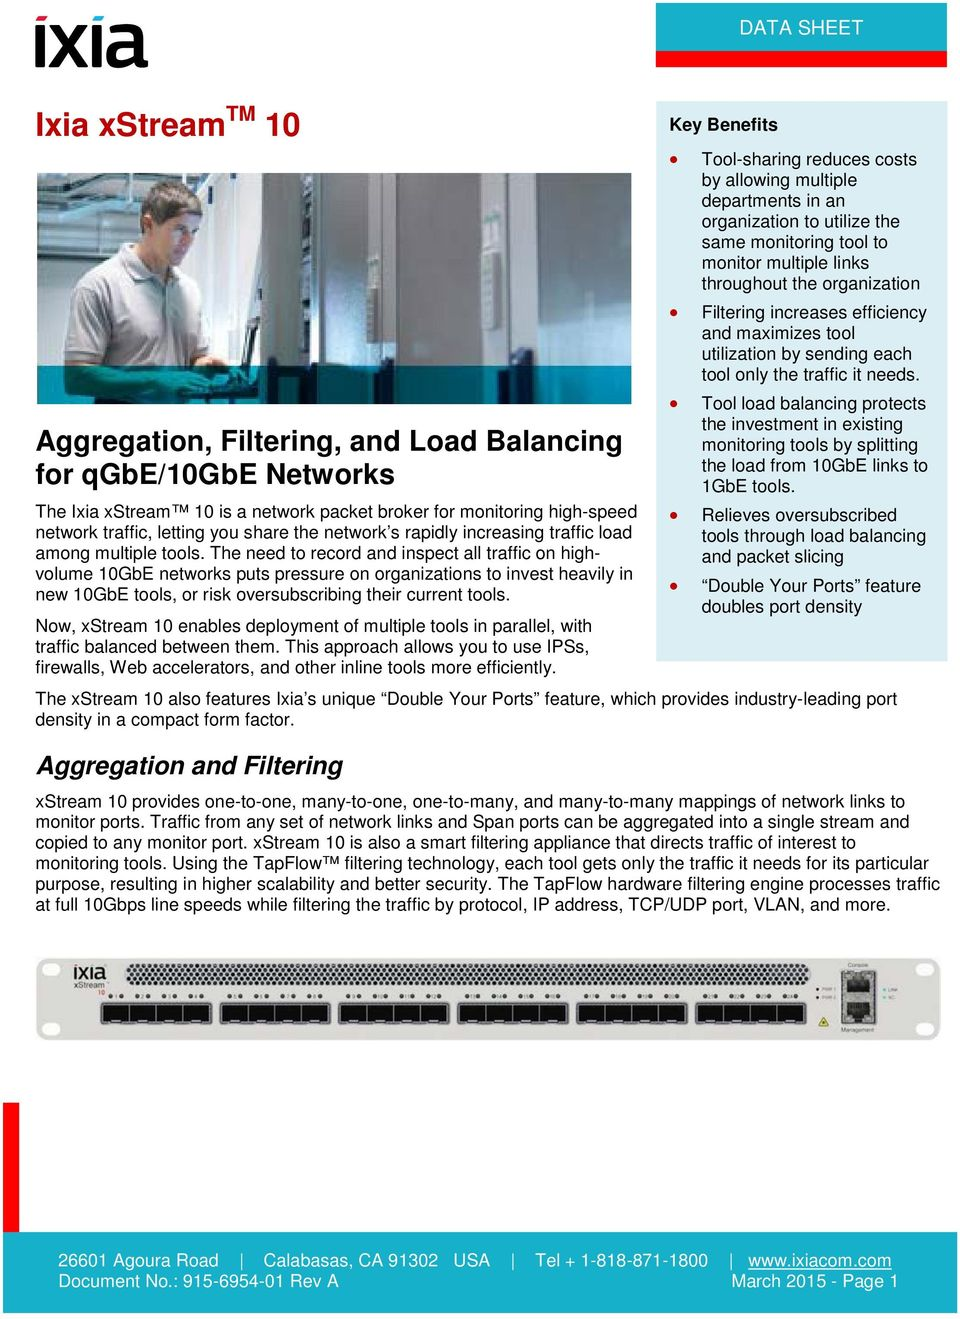 The need to record and inspect all traffic on highvolume 10GbE networks puts pressure on organizations to invest heavily in new 10GbE tools, or risk oversubscribing their current tools.